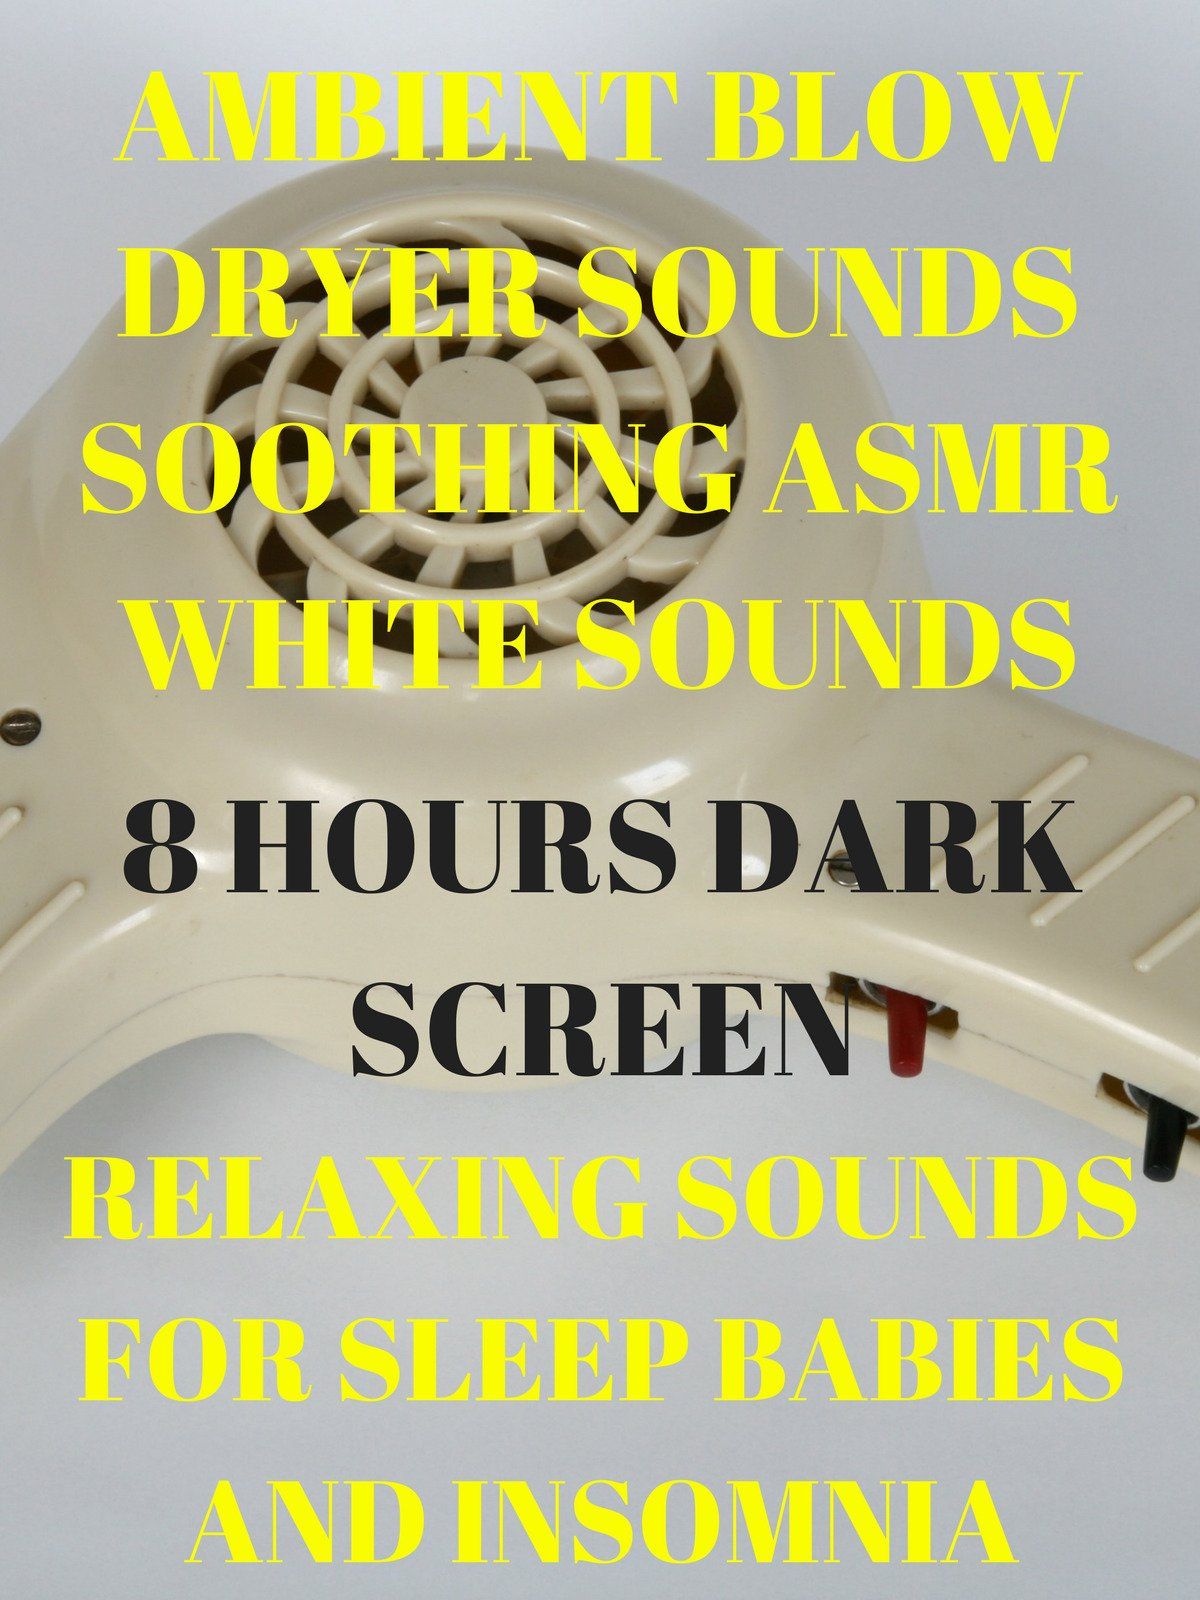 Ambient hair dryer sounds soothing ASMR white noise 8 hours dark screen relaxing sounds for sleep babies and insomnia